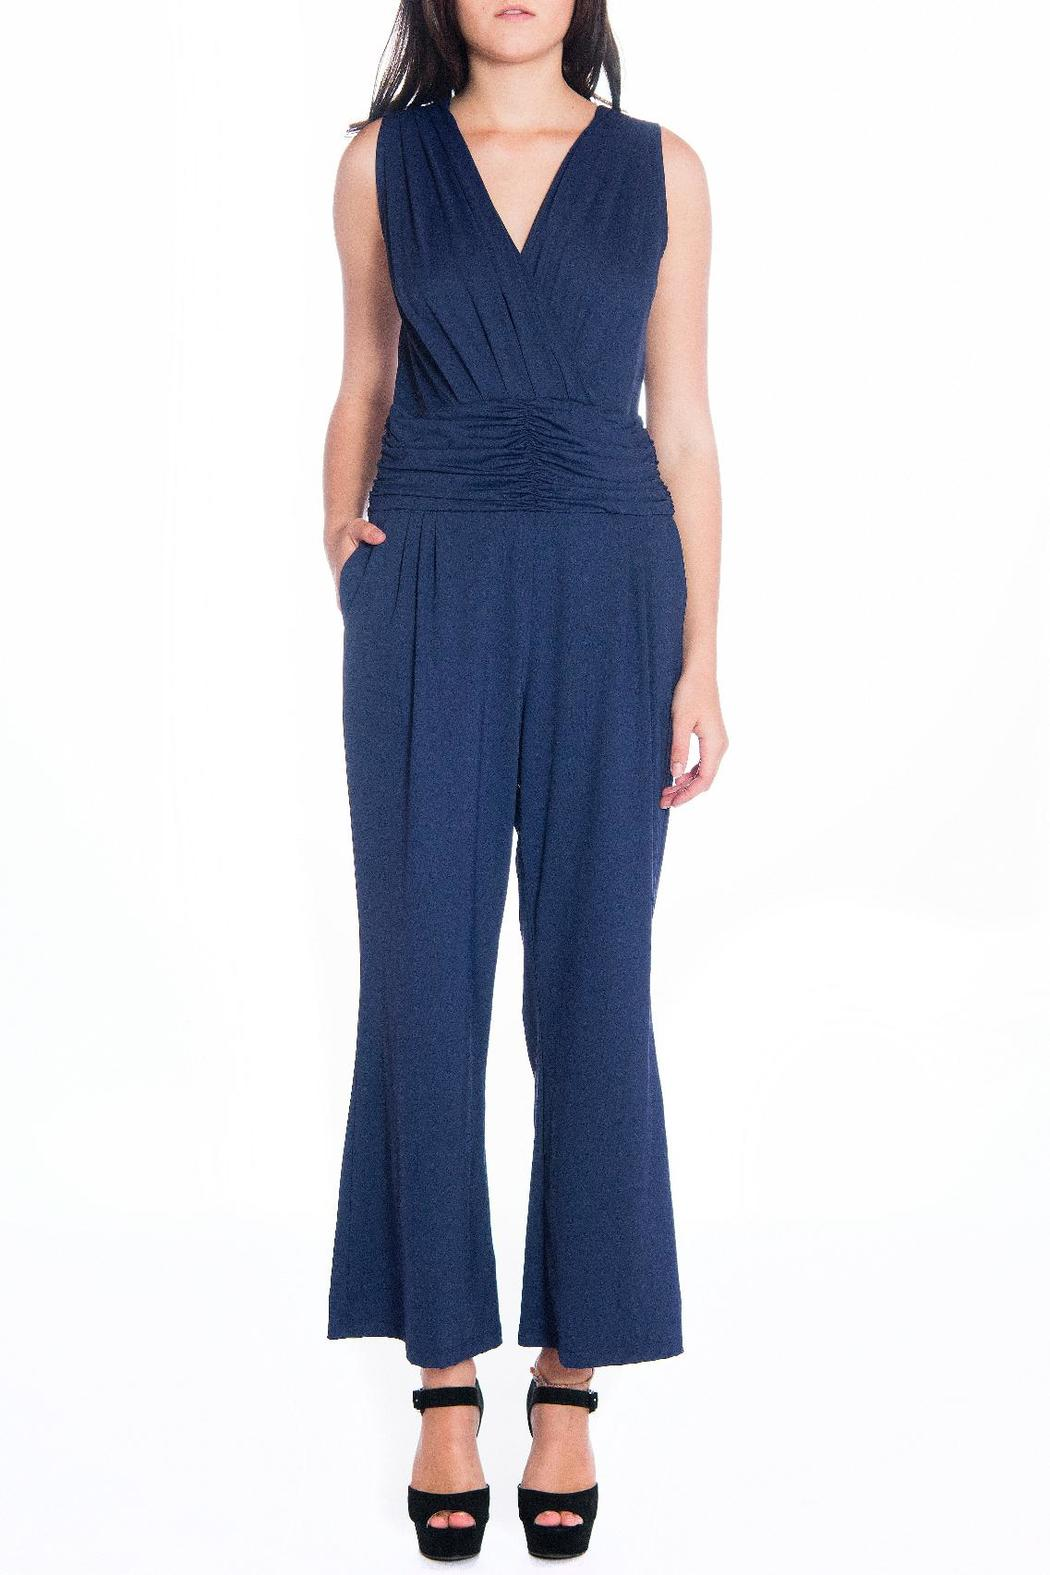 Daria Blue Fitted Jumpsuit - Main Image